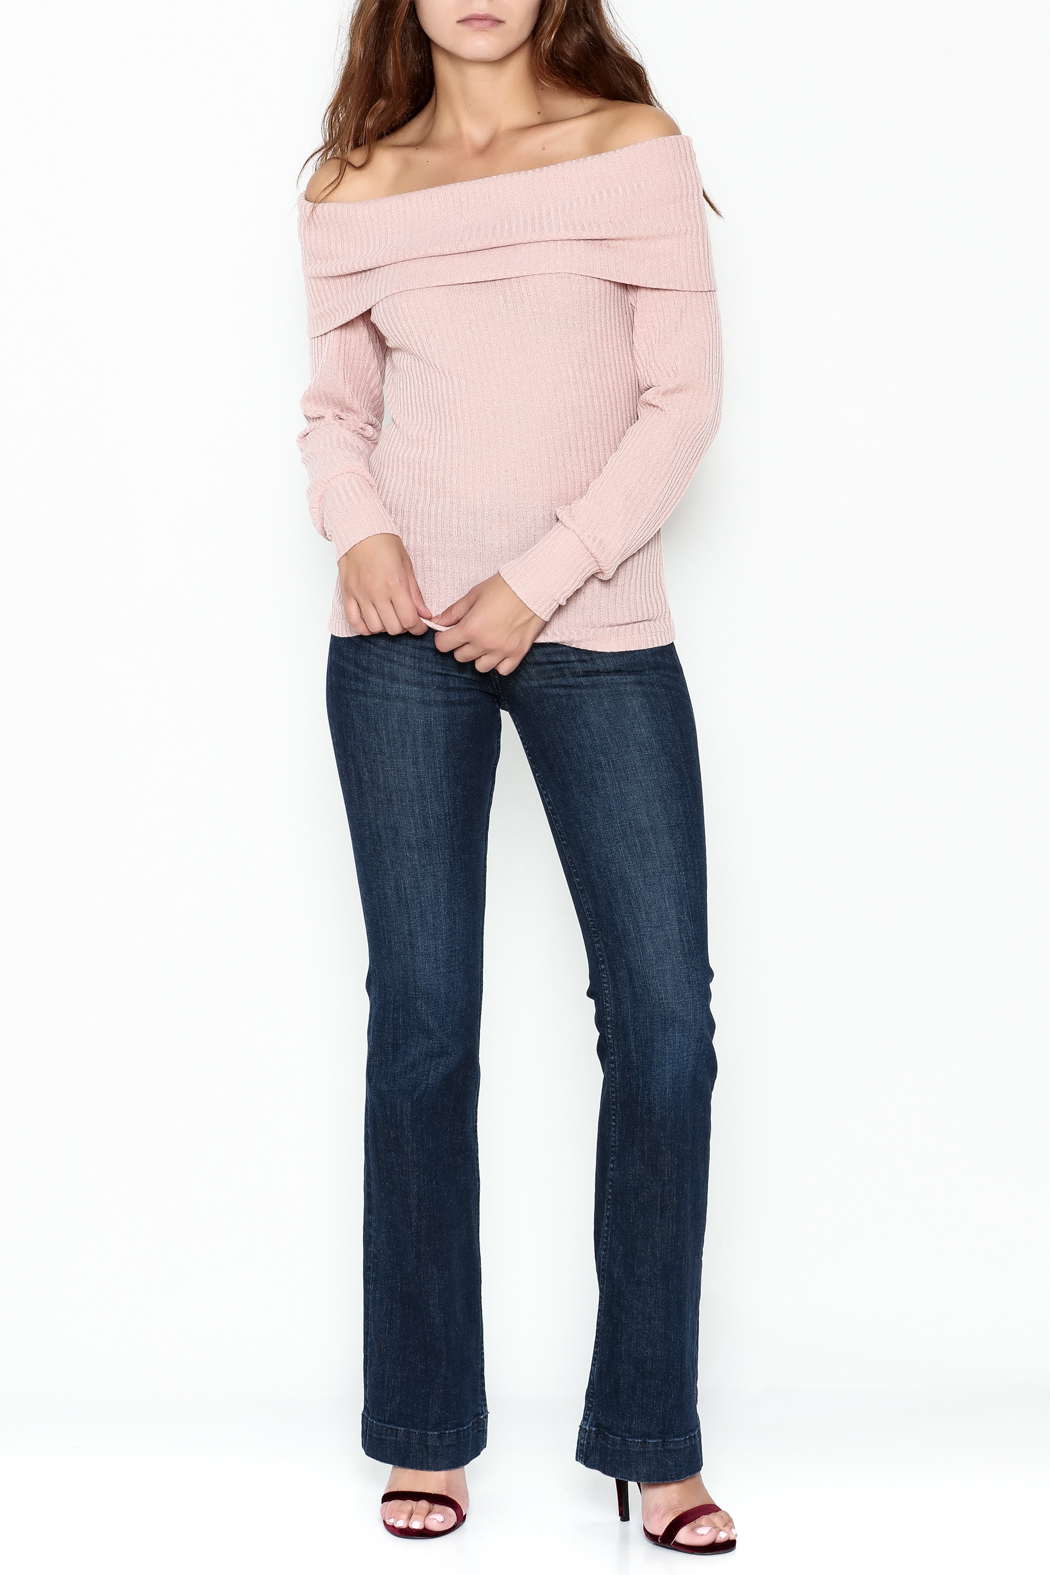 HYFVE Lace Up Back Sweater - Side Cropped Image